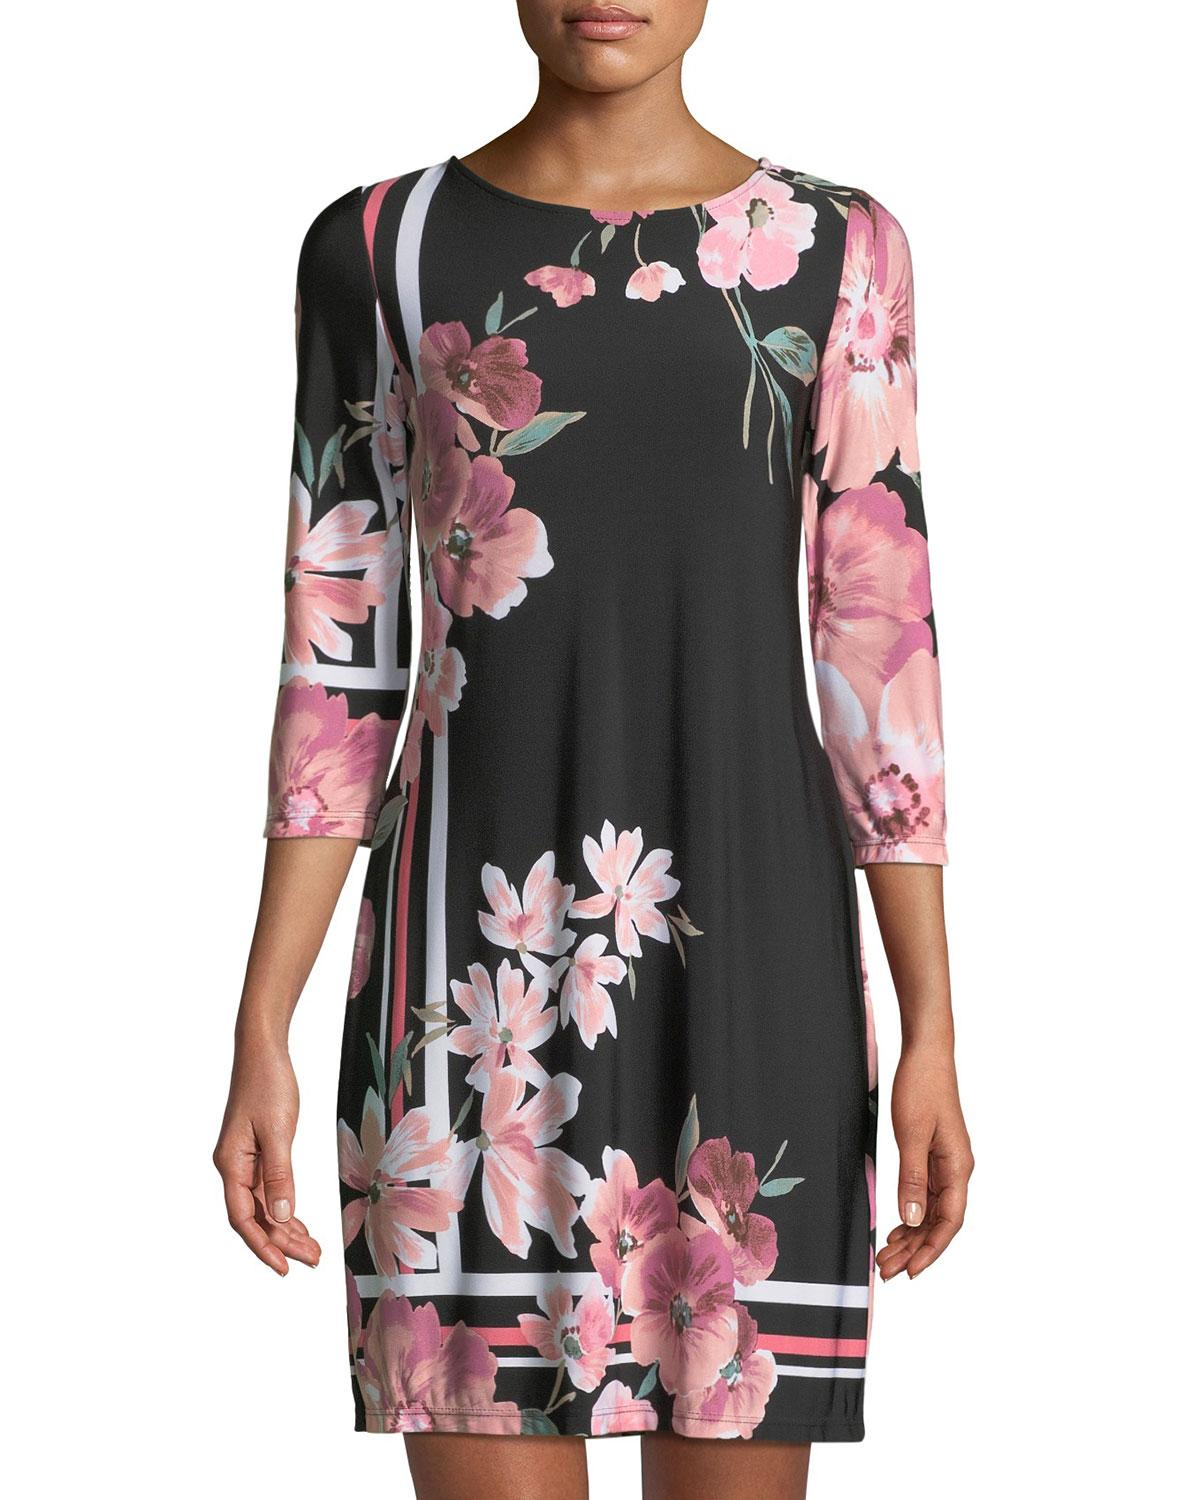 8f8fe2db7e8 Neiman Marcus 3/4-Sleeve Floral-Print Shift Dress In Black/Pink ...